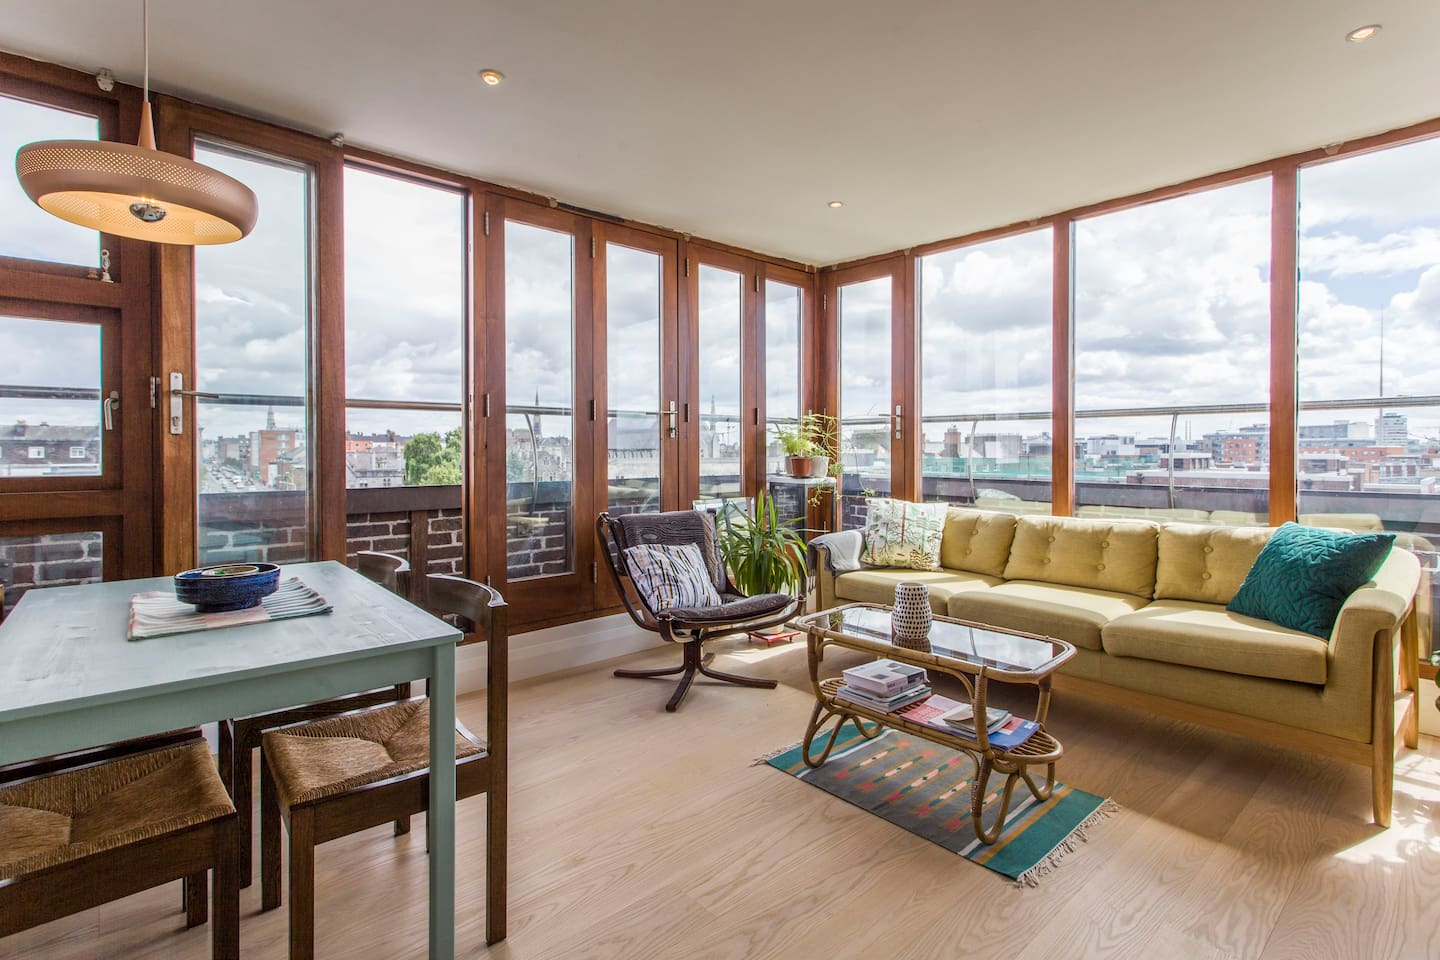 Relax in our comfy sitting room/kitchen  while taking in the views of Dublin.